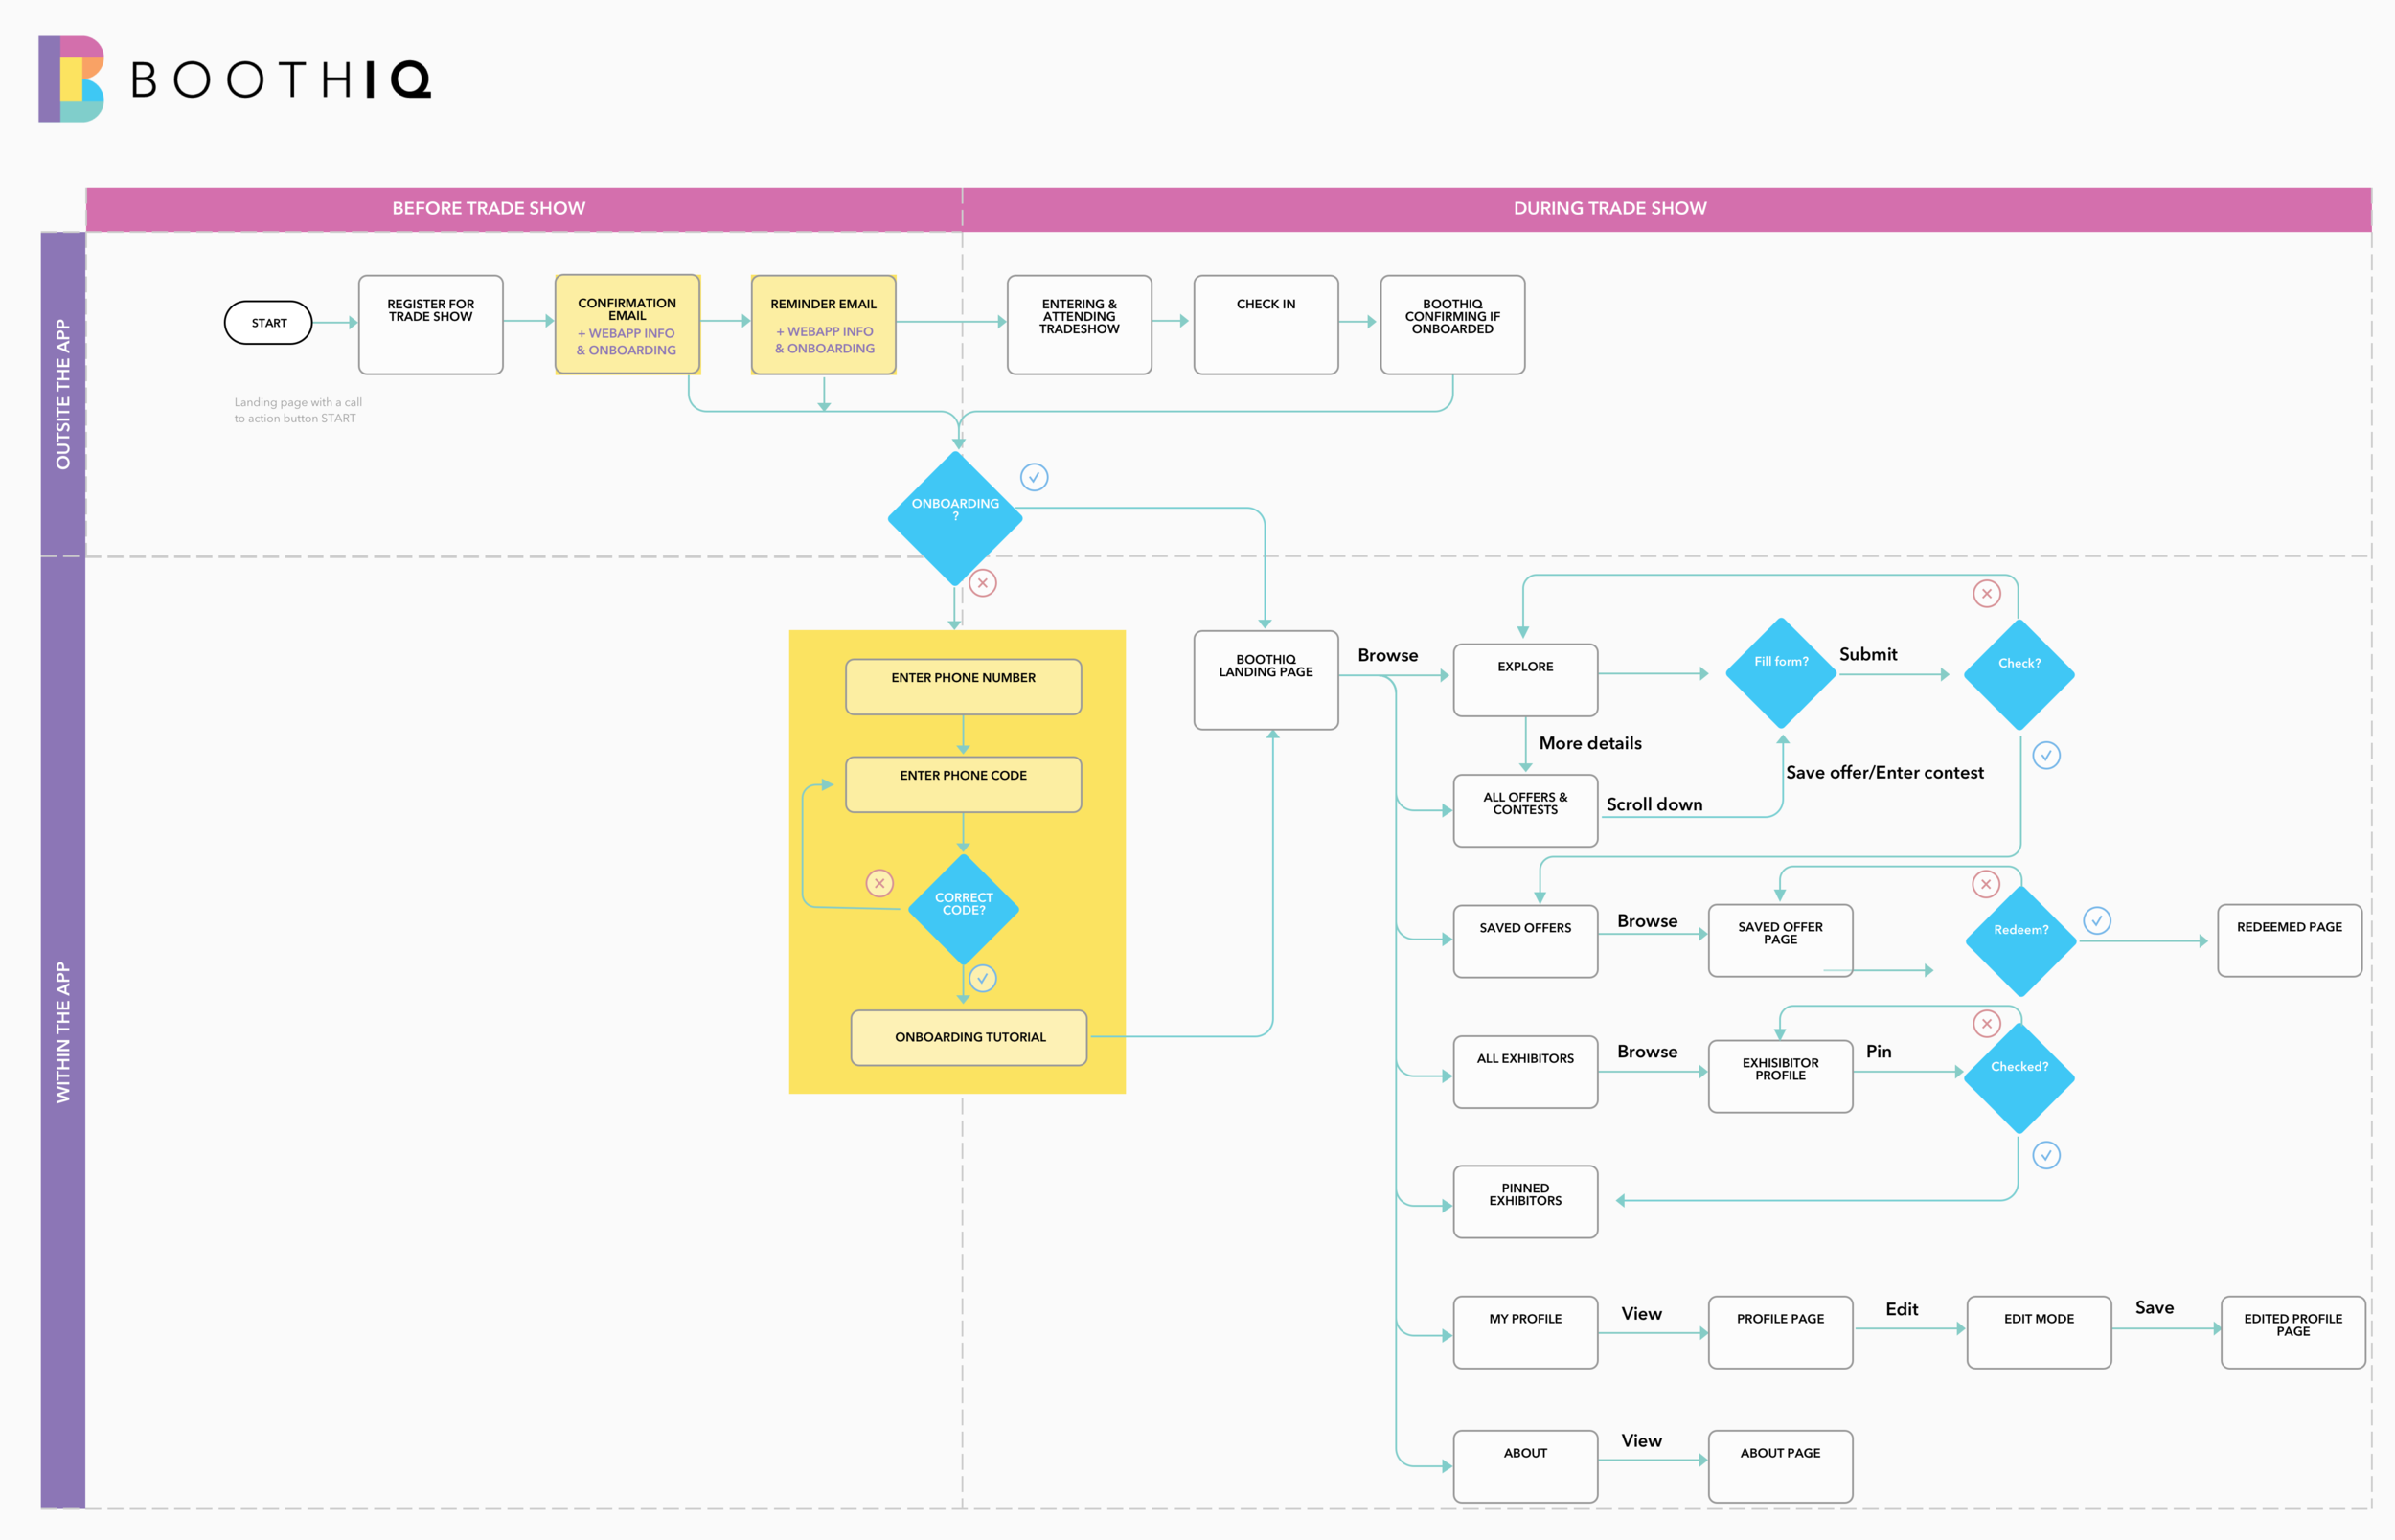 BoothIQ_User flow .png